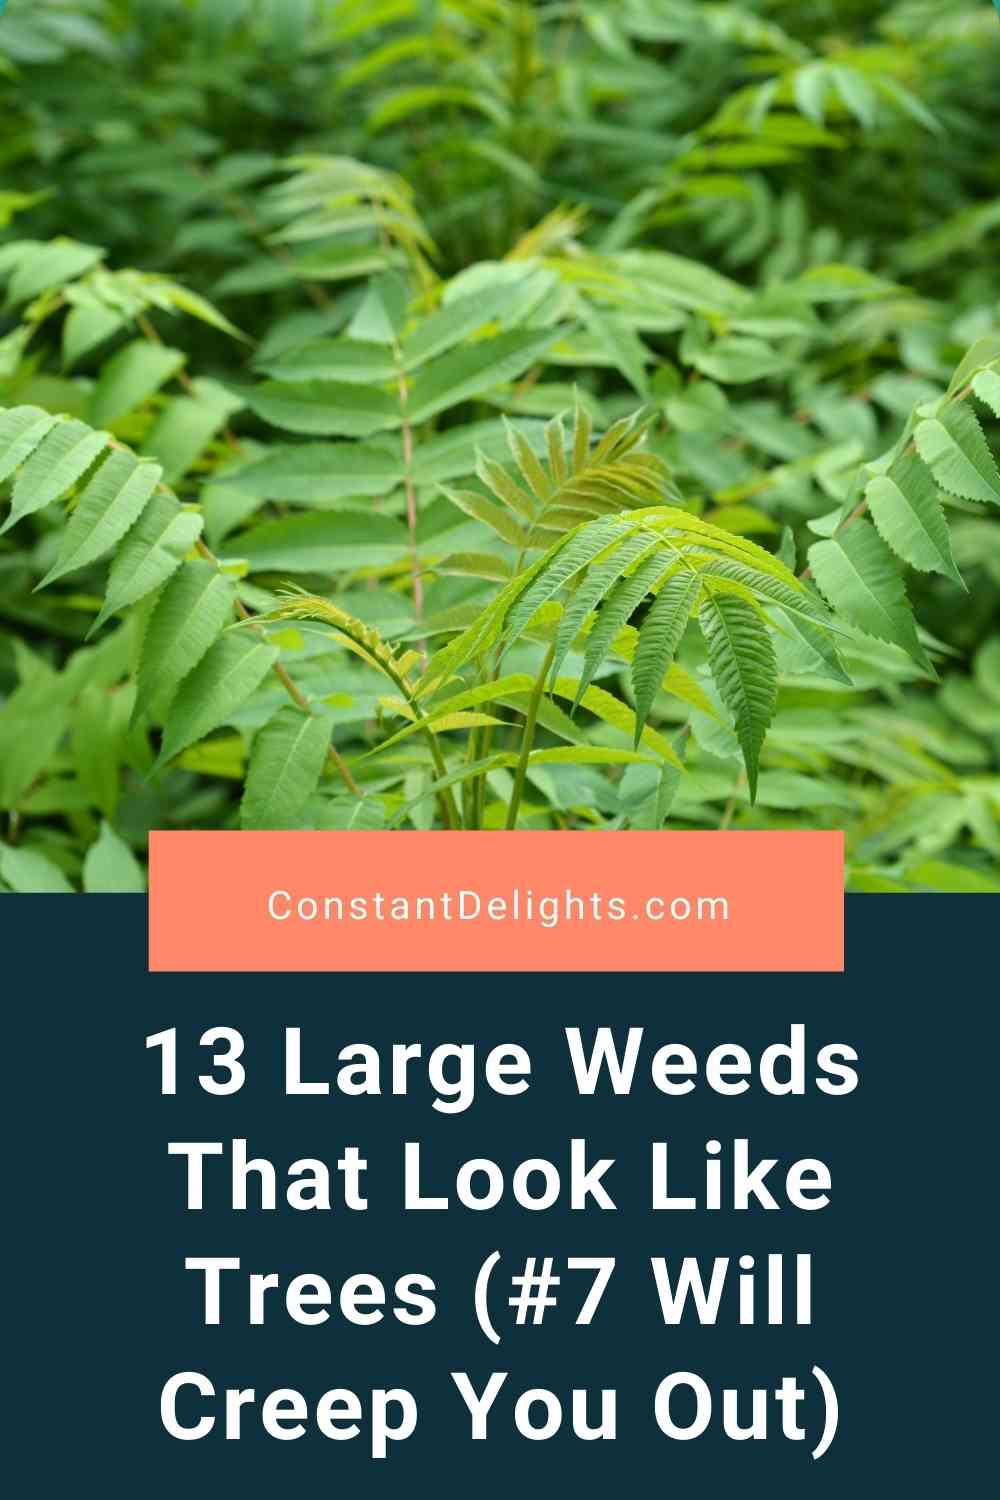 13 Large Weeds That Look Like Trees (#7 Will Creep You Out)